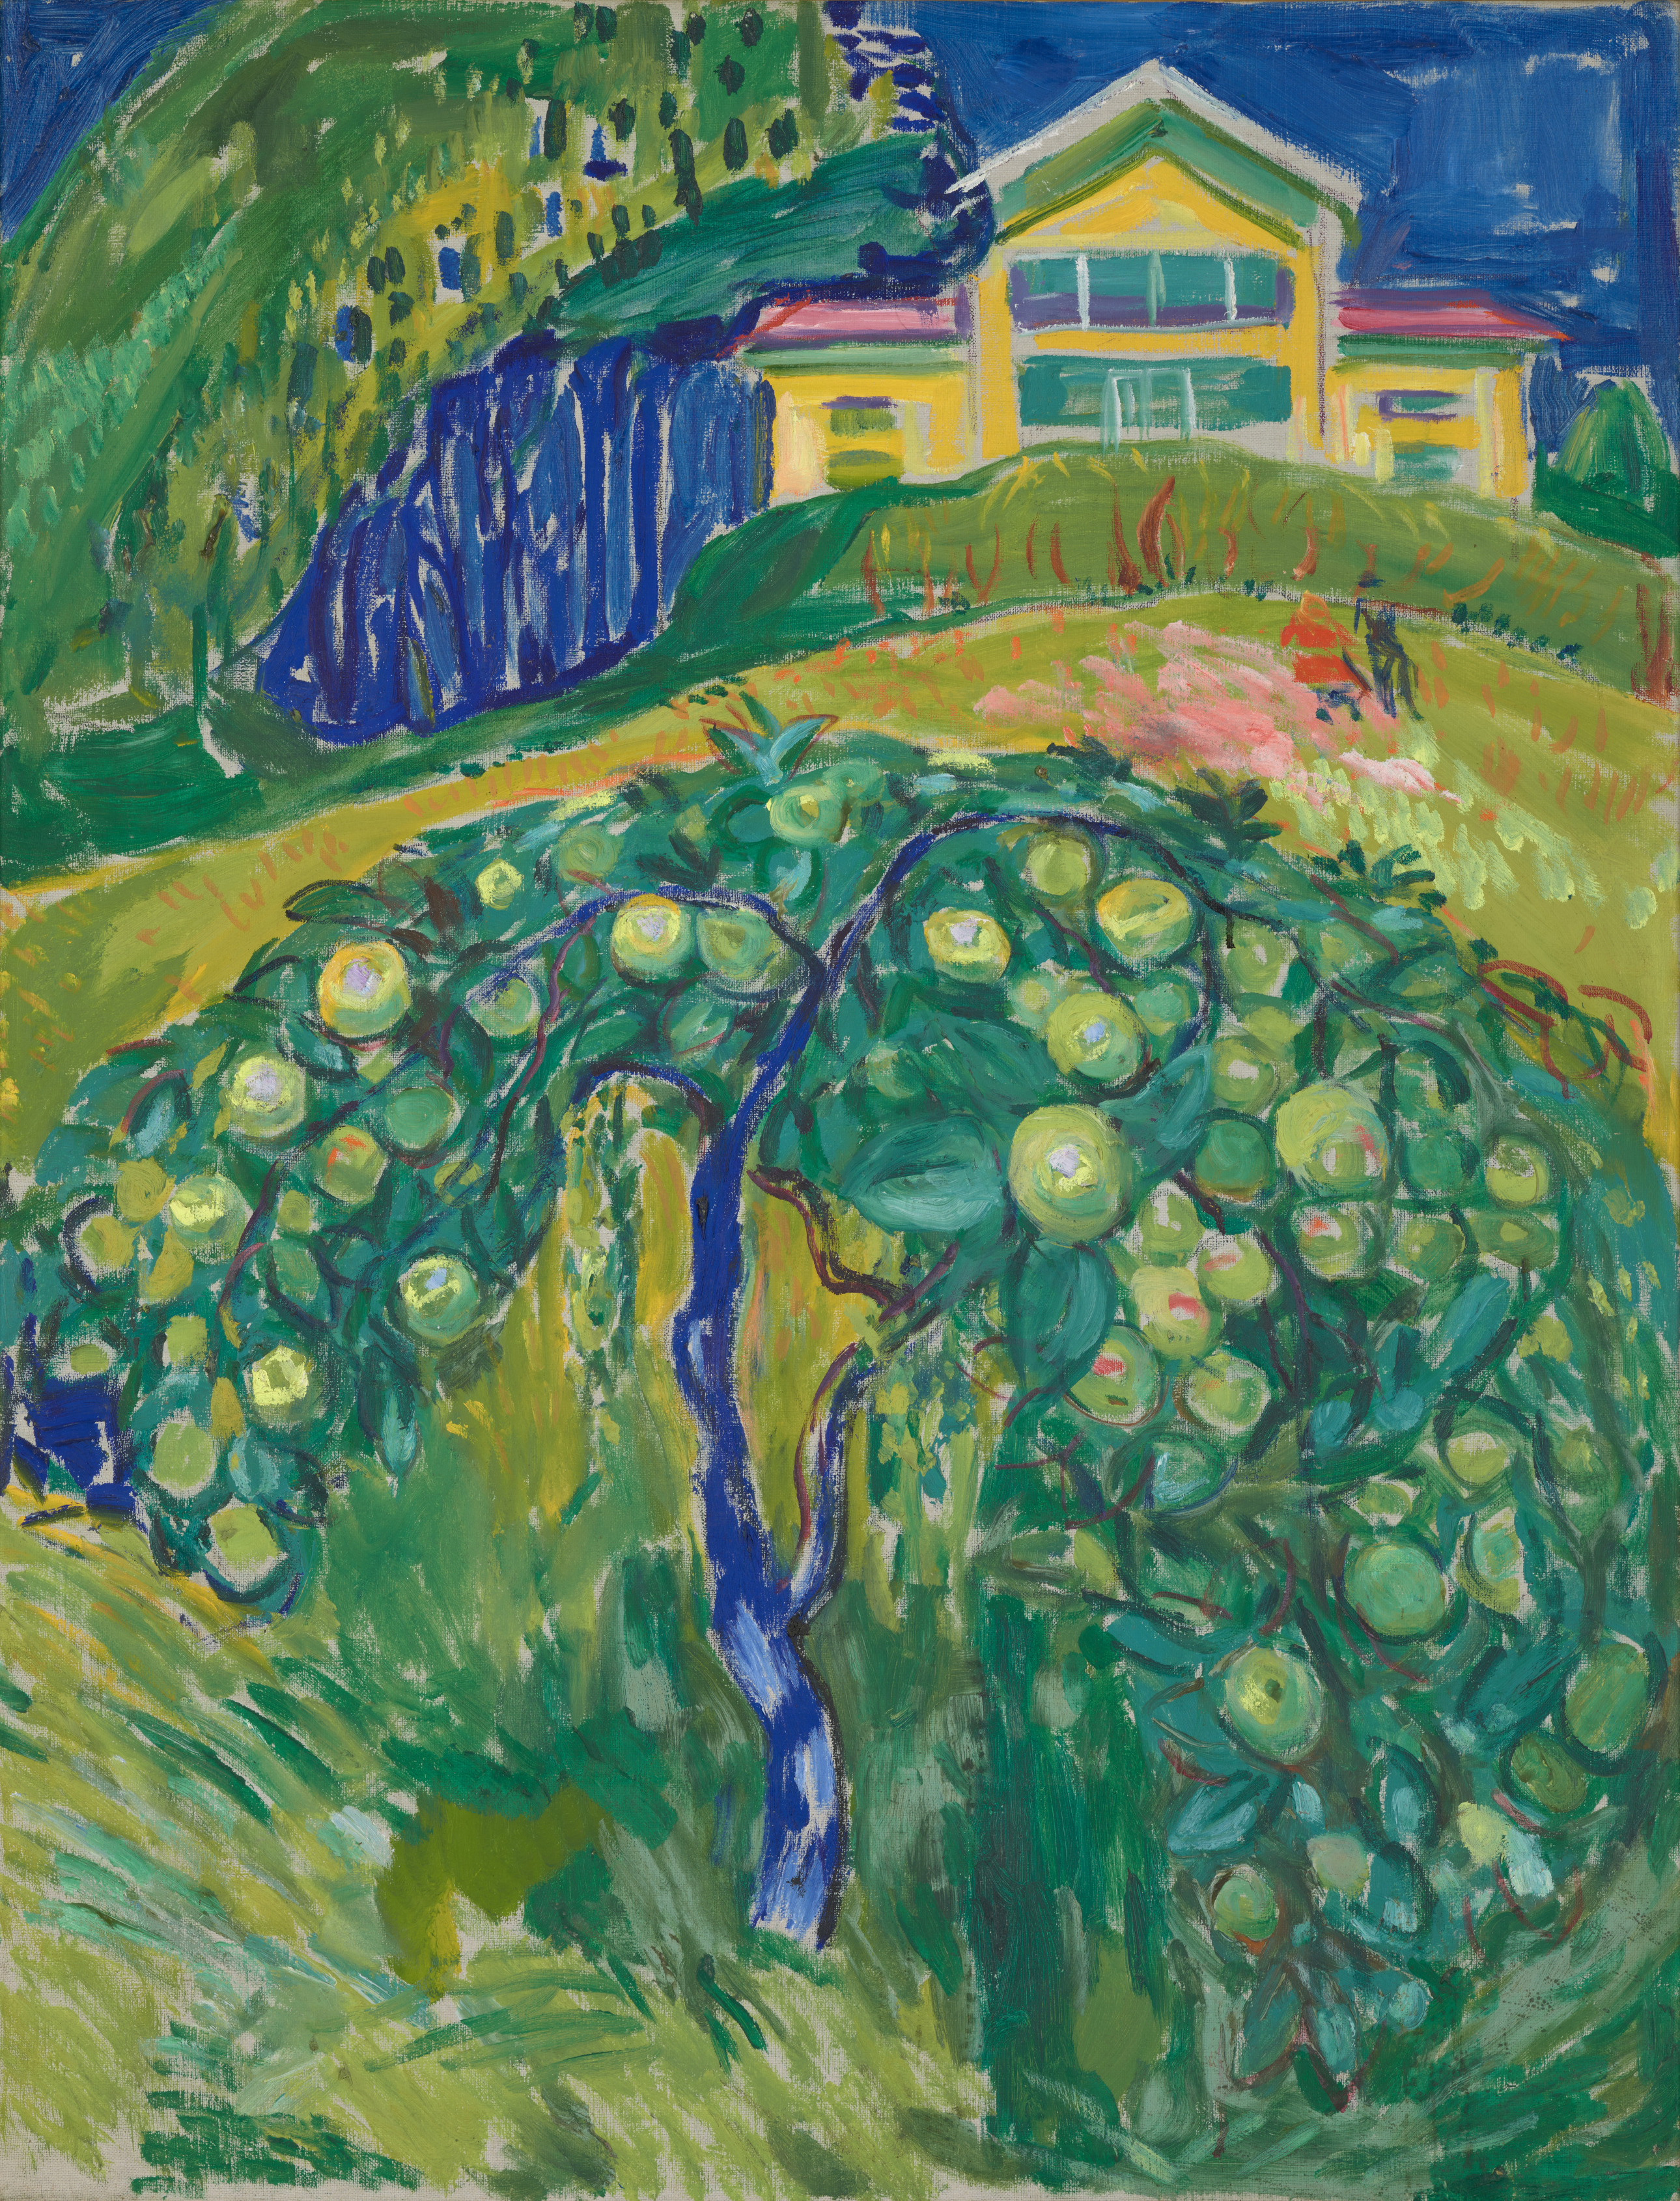 Edvard Munch: Apple Tree in the Garden. Oil on canvas, 1932-42. Photo © Munchmuseet